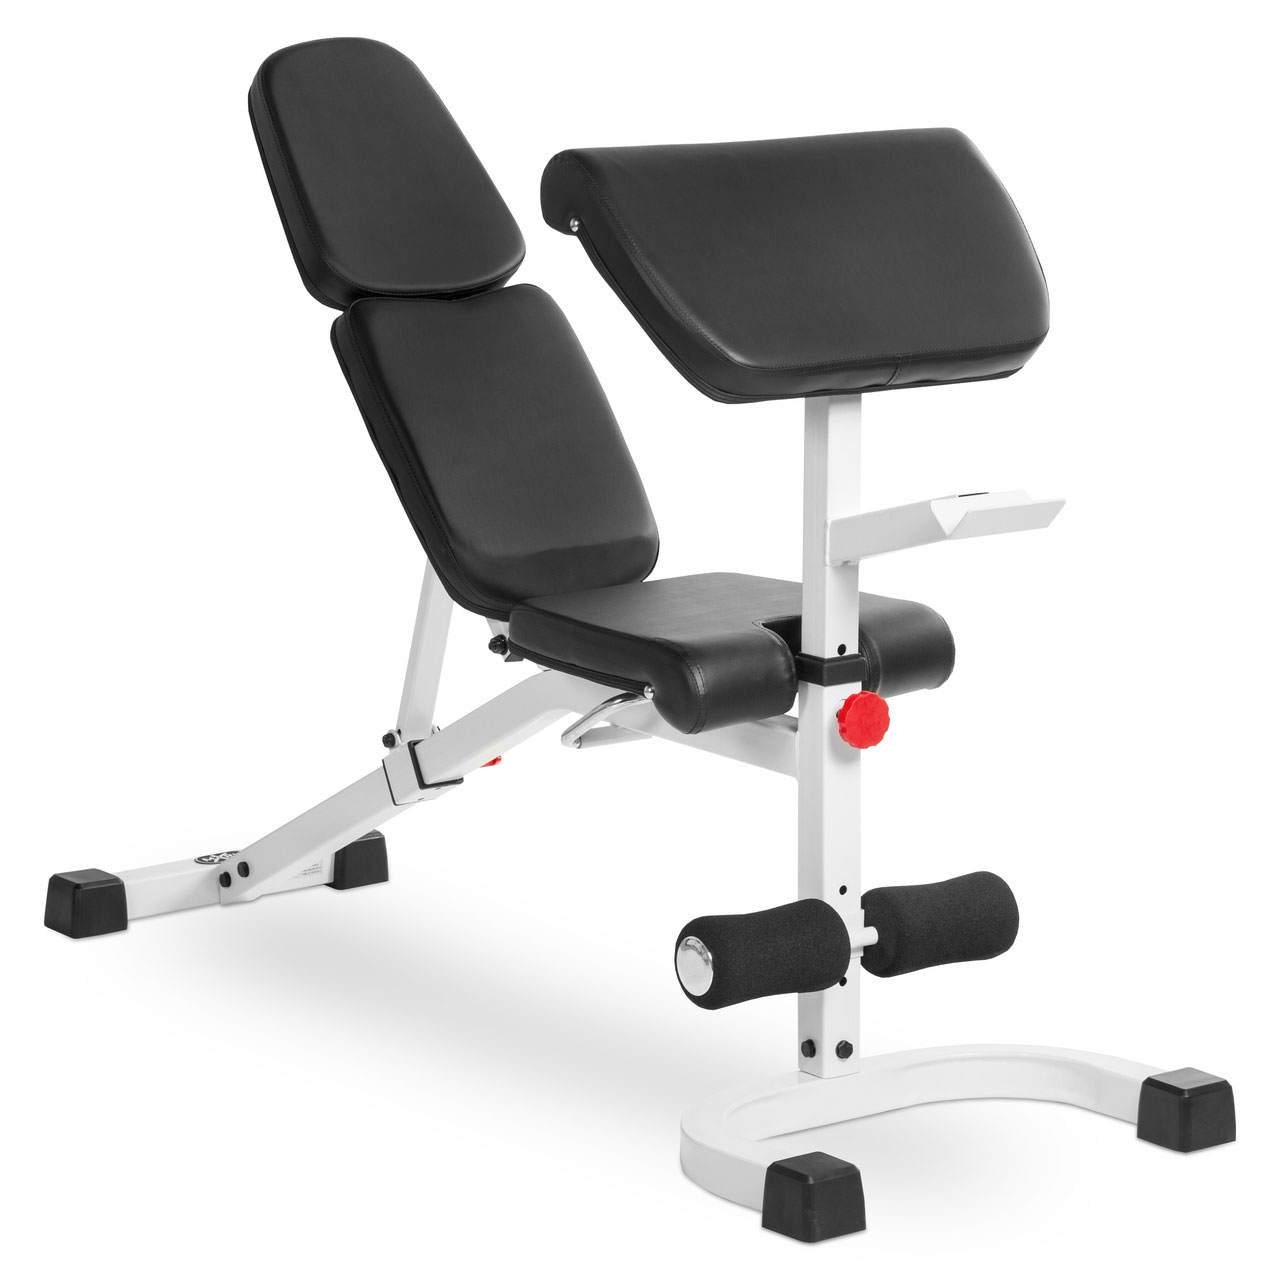 Xmark Fitness Flat Incline Decline Bench With Preacher